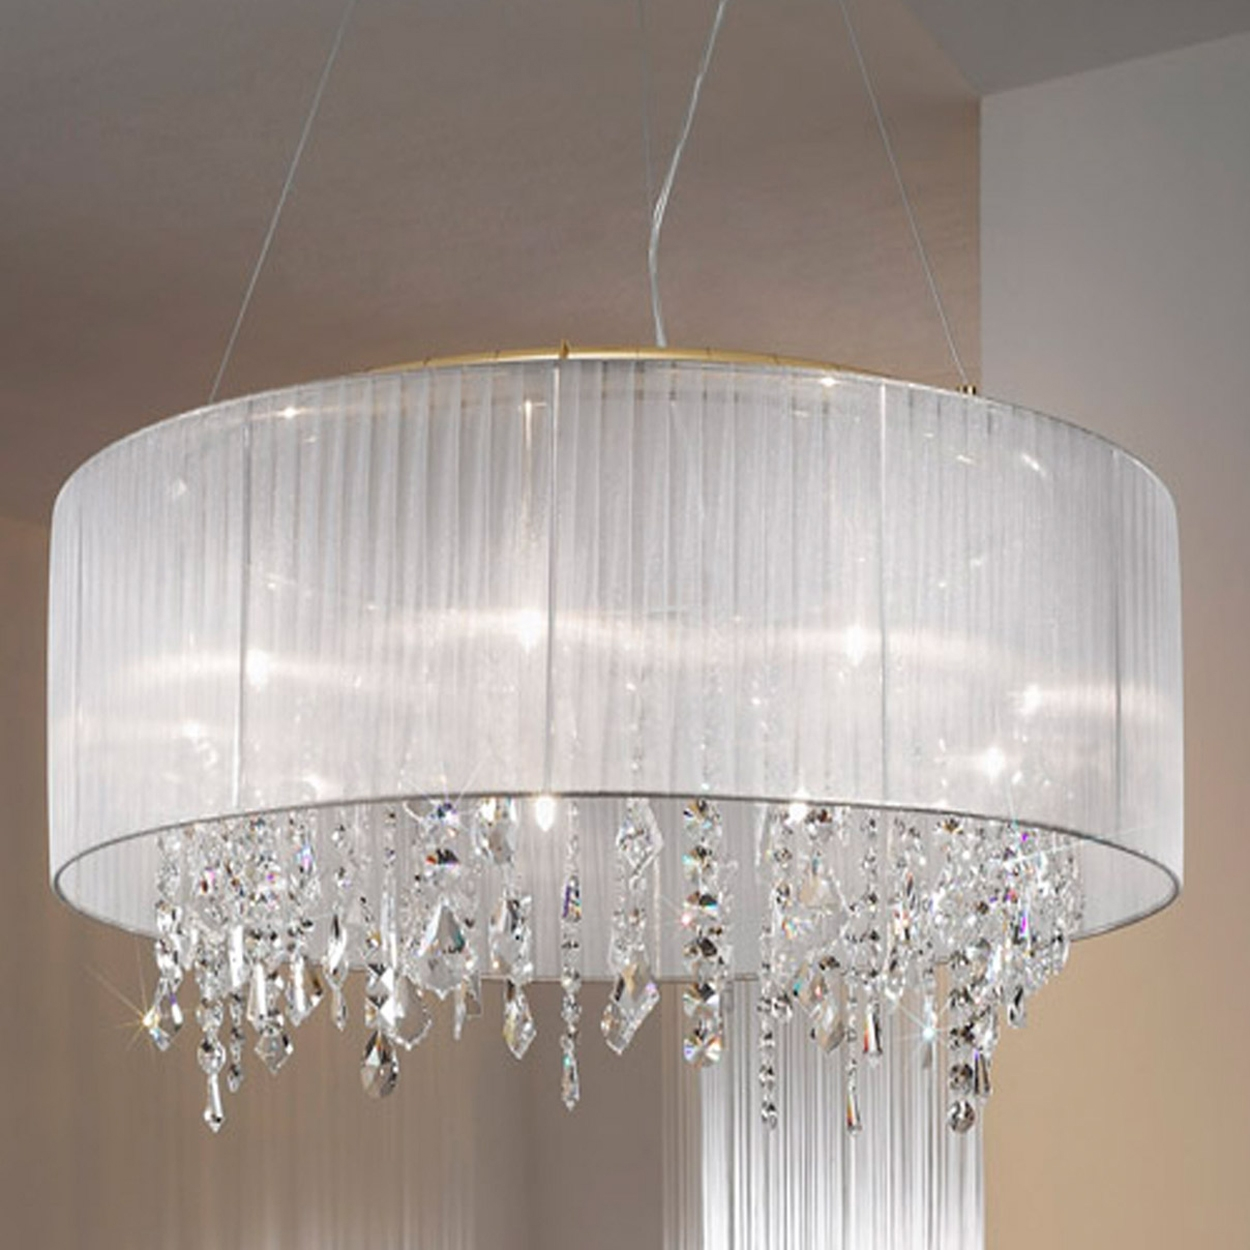 Decorative Lamp Shades For Chandeliers Best Home Decor Inspirations In Chandelier Light Shades (View 10 of 25)